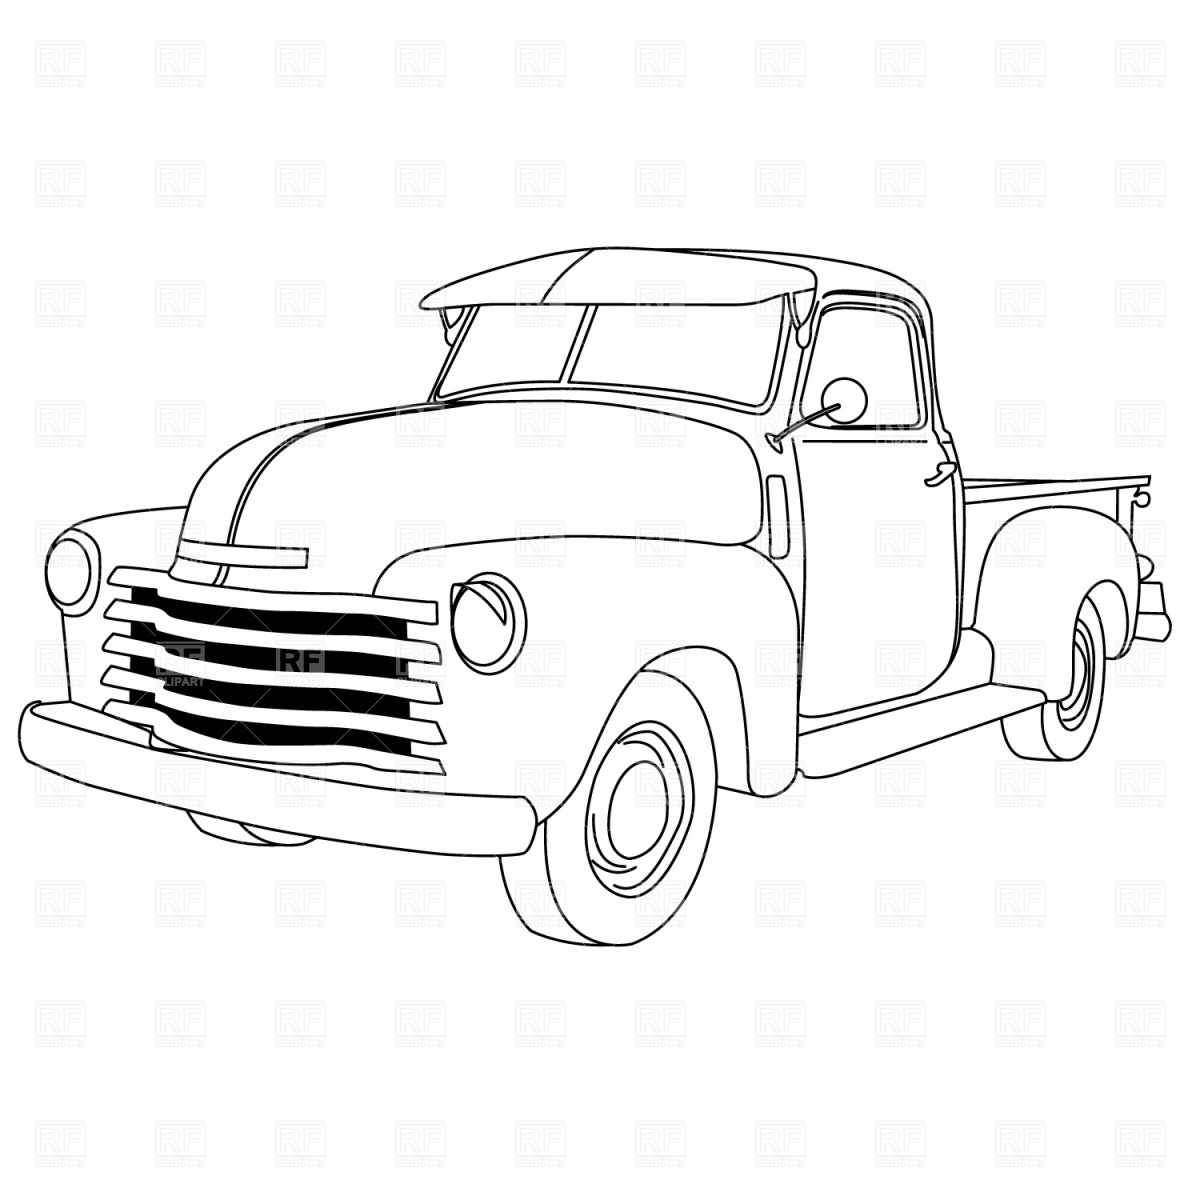 55 Chevy Drawing At Free For Personal Use Painless Wiring Diagrams 1950 3100 1200x1200 Old Trucks Coloring American Pick Up Truck